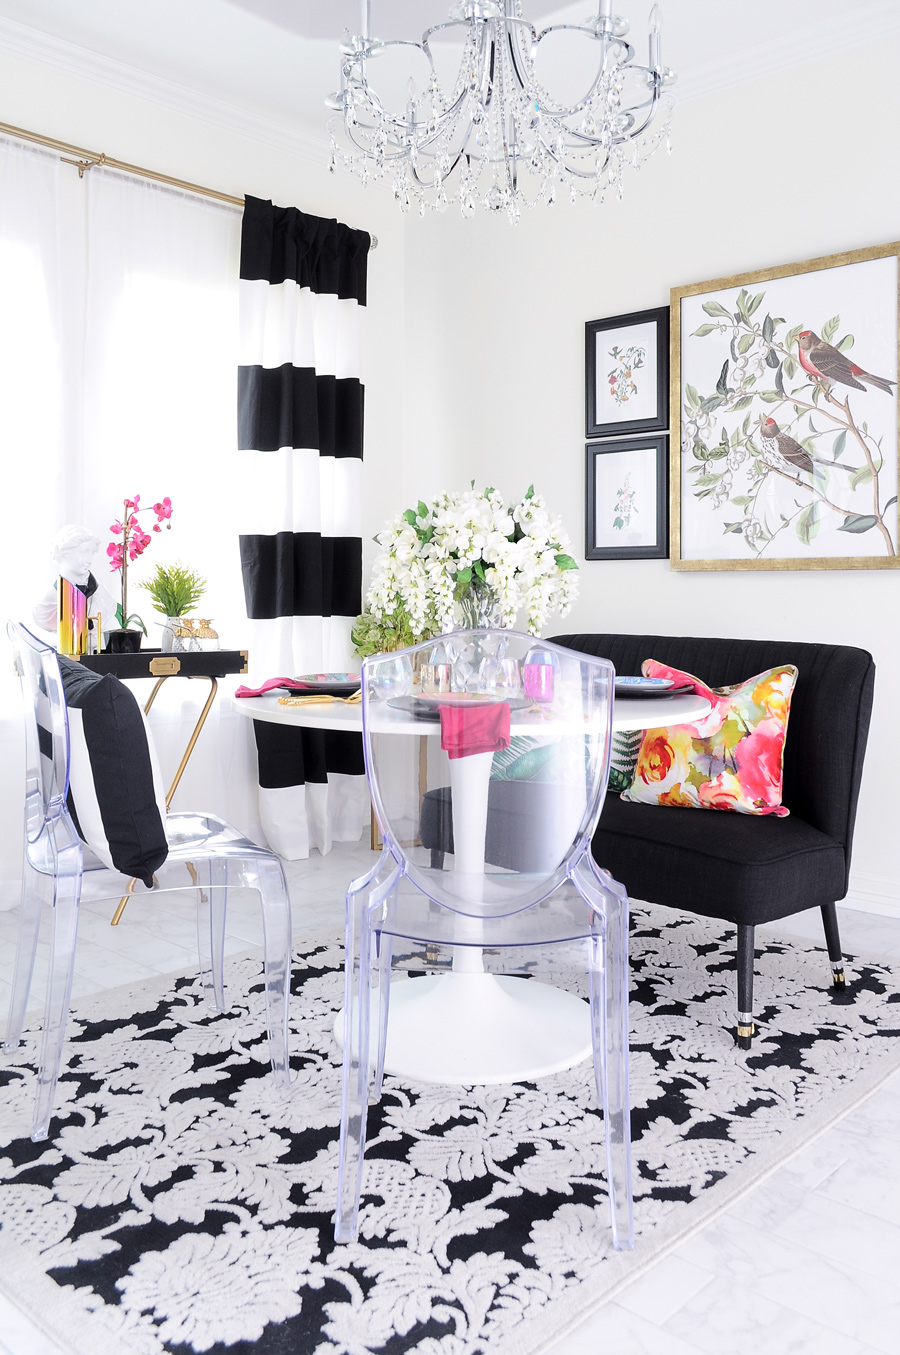 Black and white curtains adorn a colorful and eclectic small dining room space with ghost chairs, florals, and a campaign bar stand.